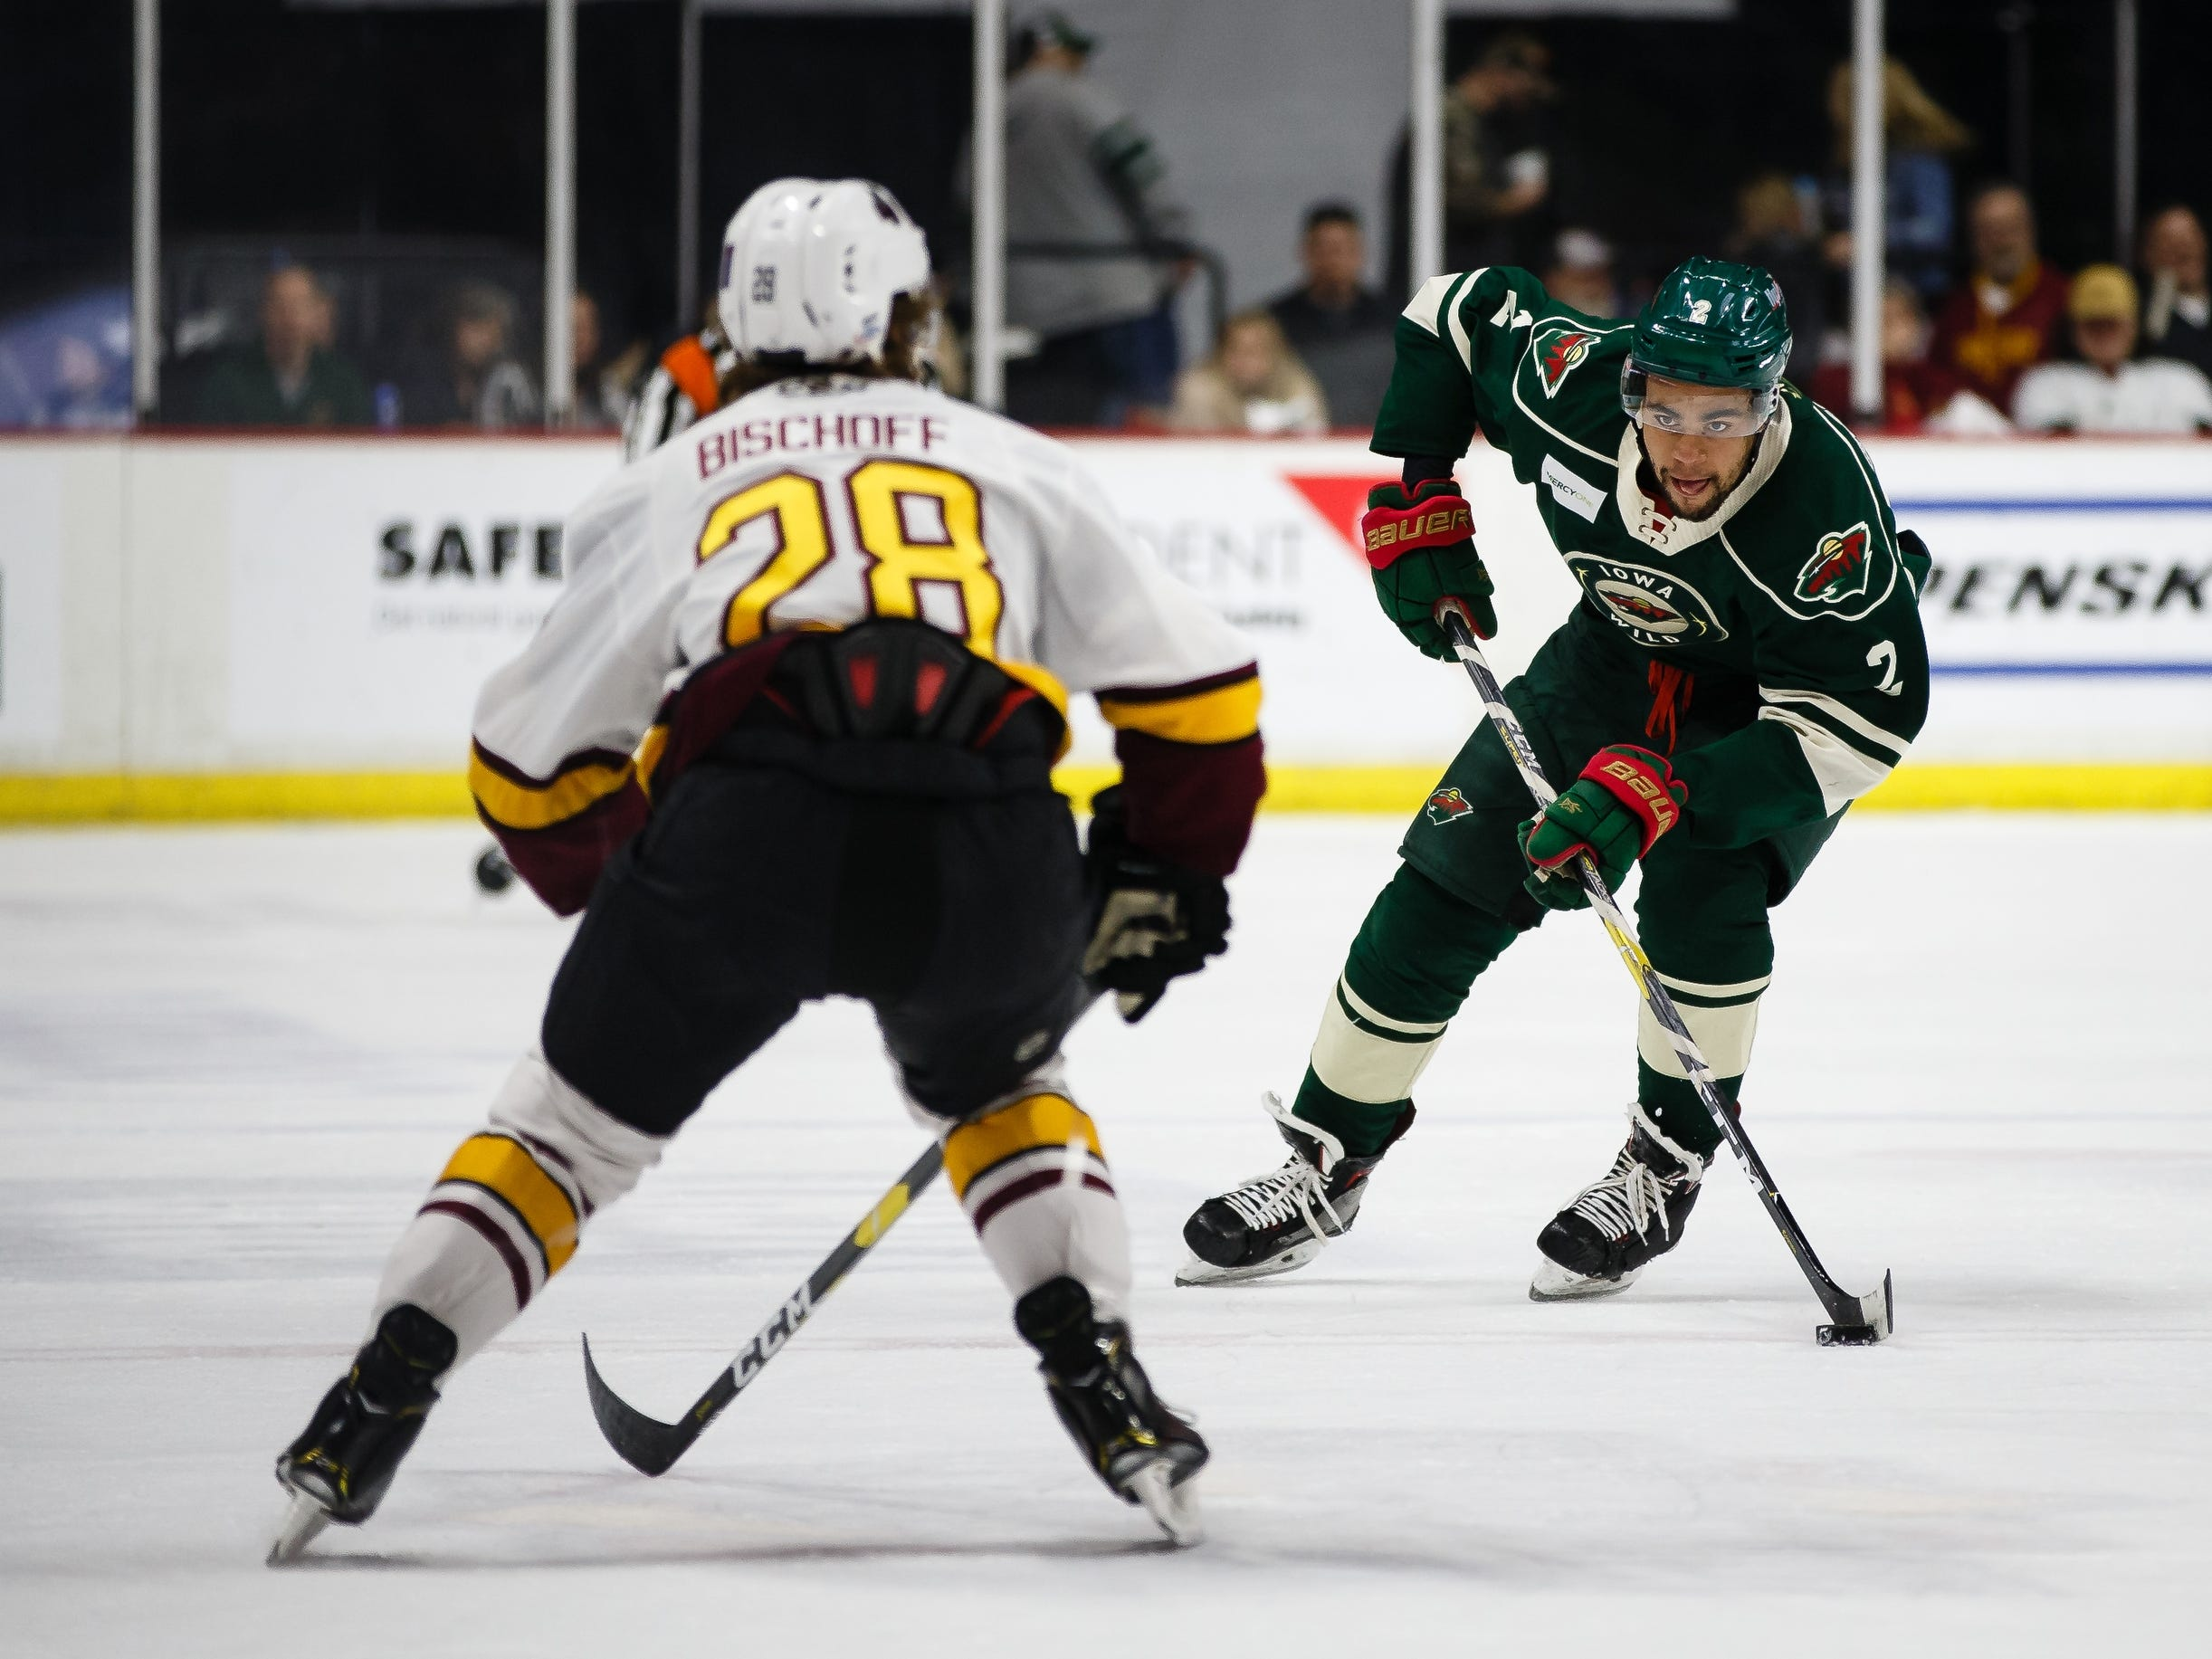 The Iowa Wild's Jordan Greenway brings the puck across center ice during their Calder Cup playoff hockey game against the Chicago Wolves on Friday, May 10, 2019, in Des Moines.